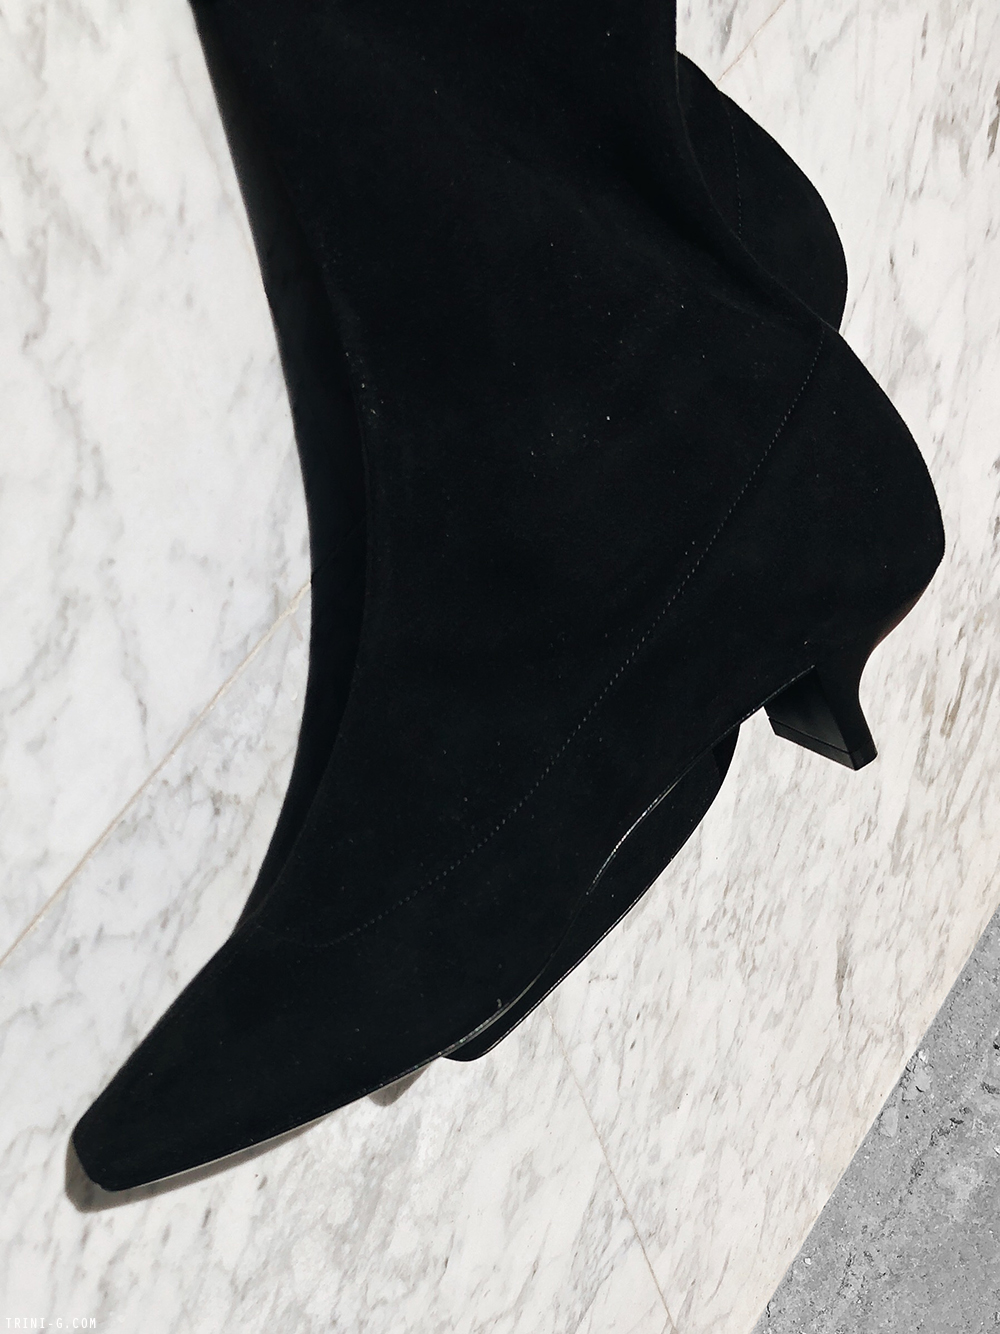 Trini | Stella McCartney boots